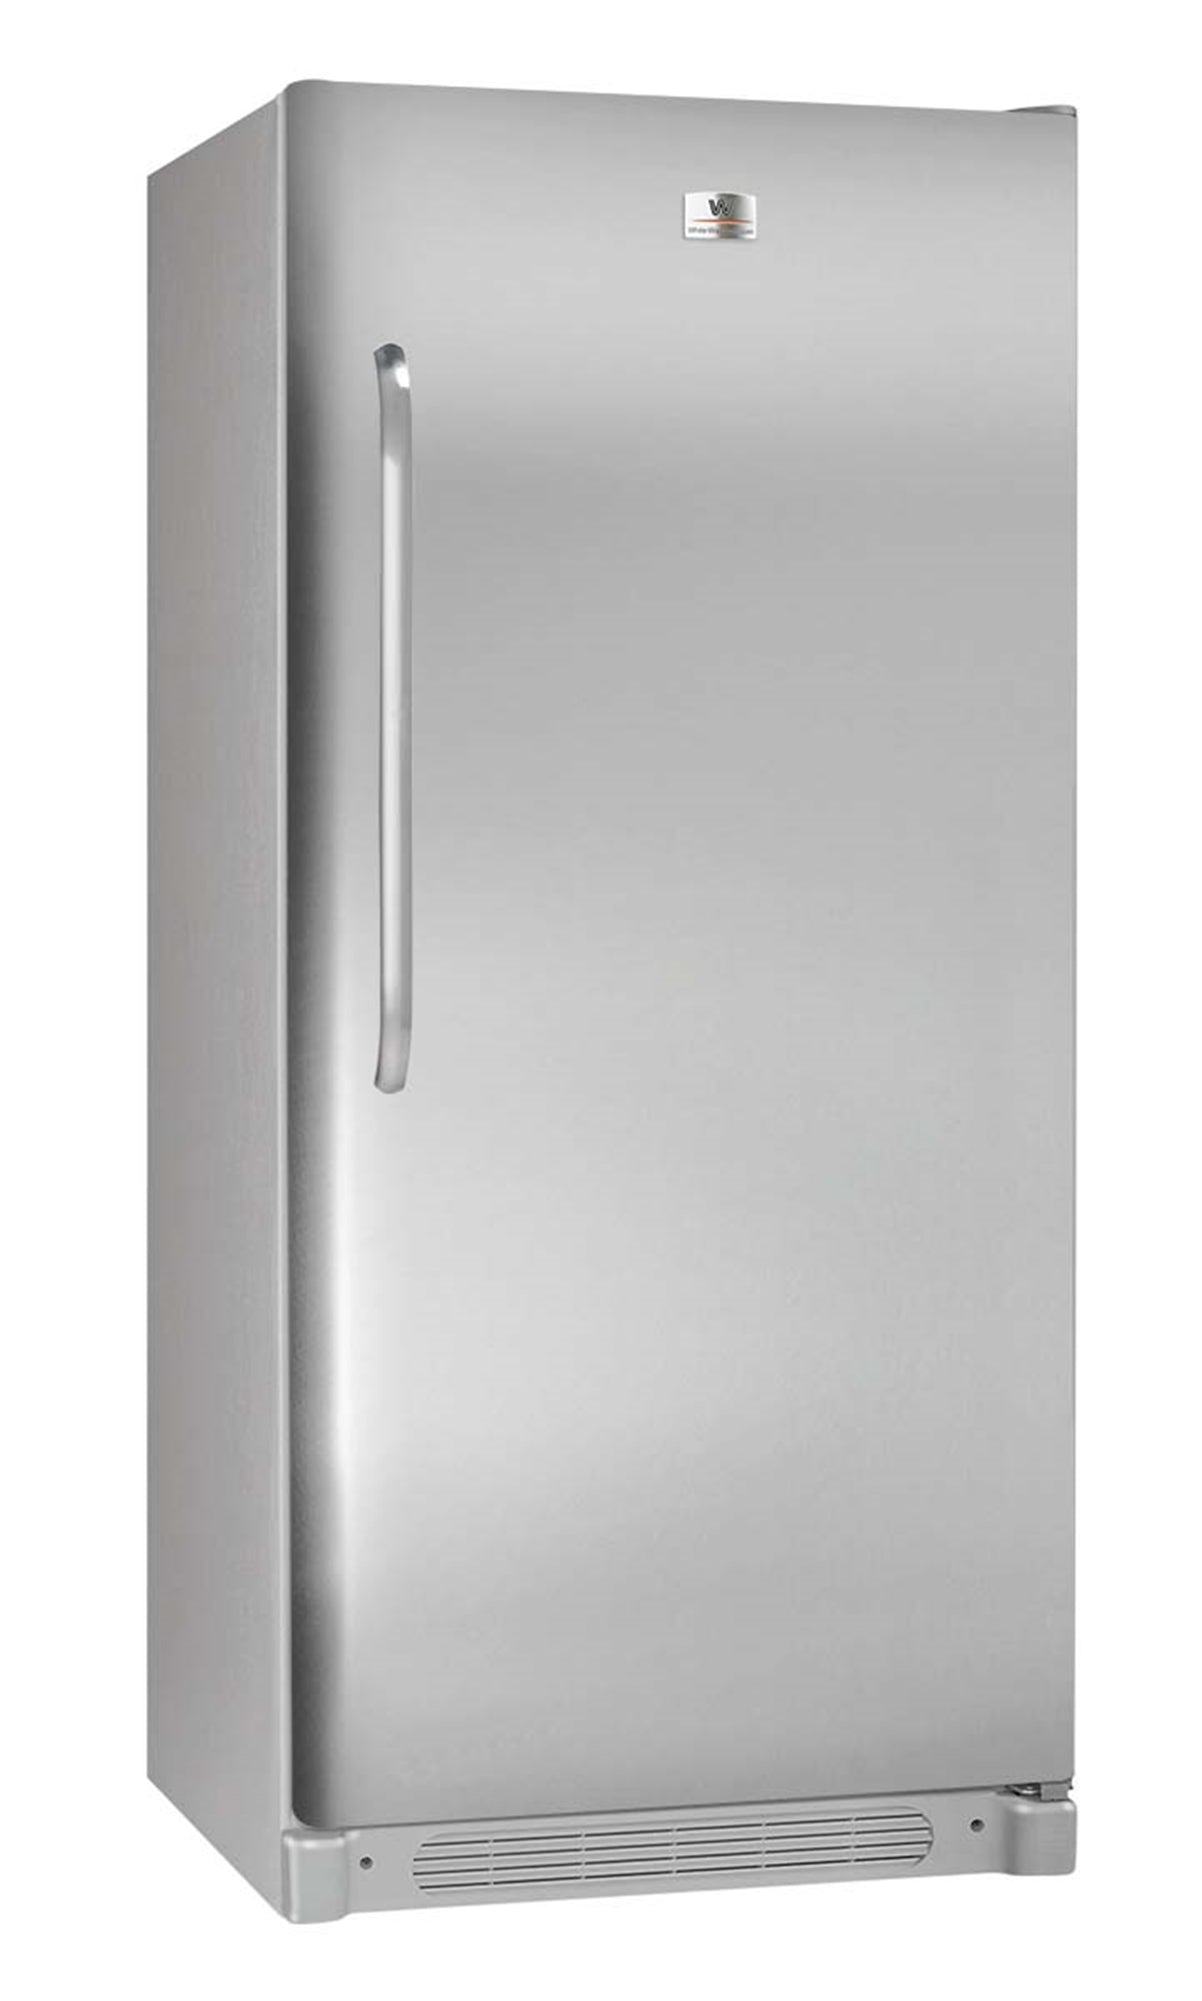 White Westinghouse Upright Freezer 581 Ltr - MRA21V7QS